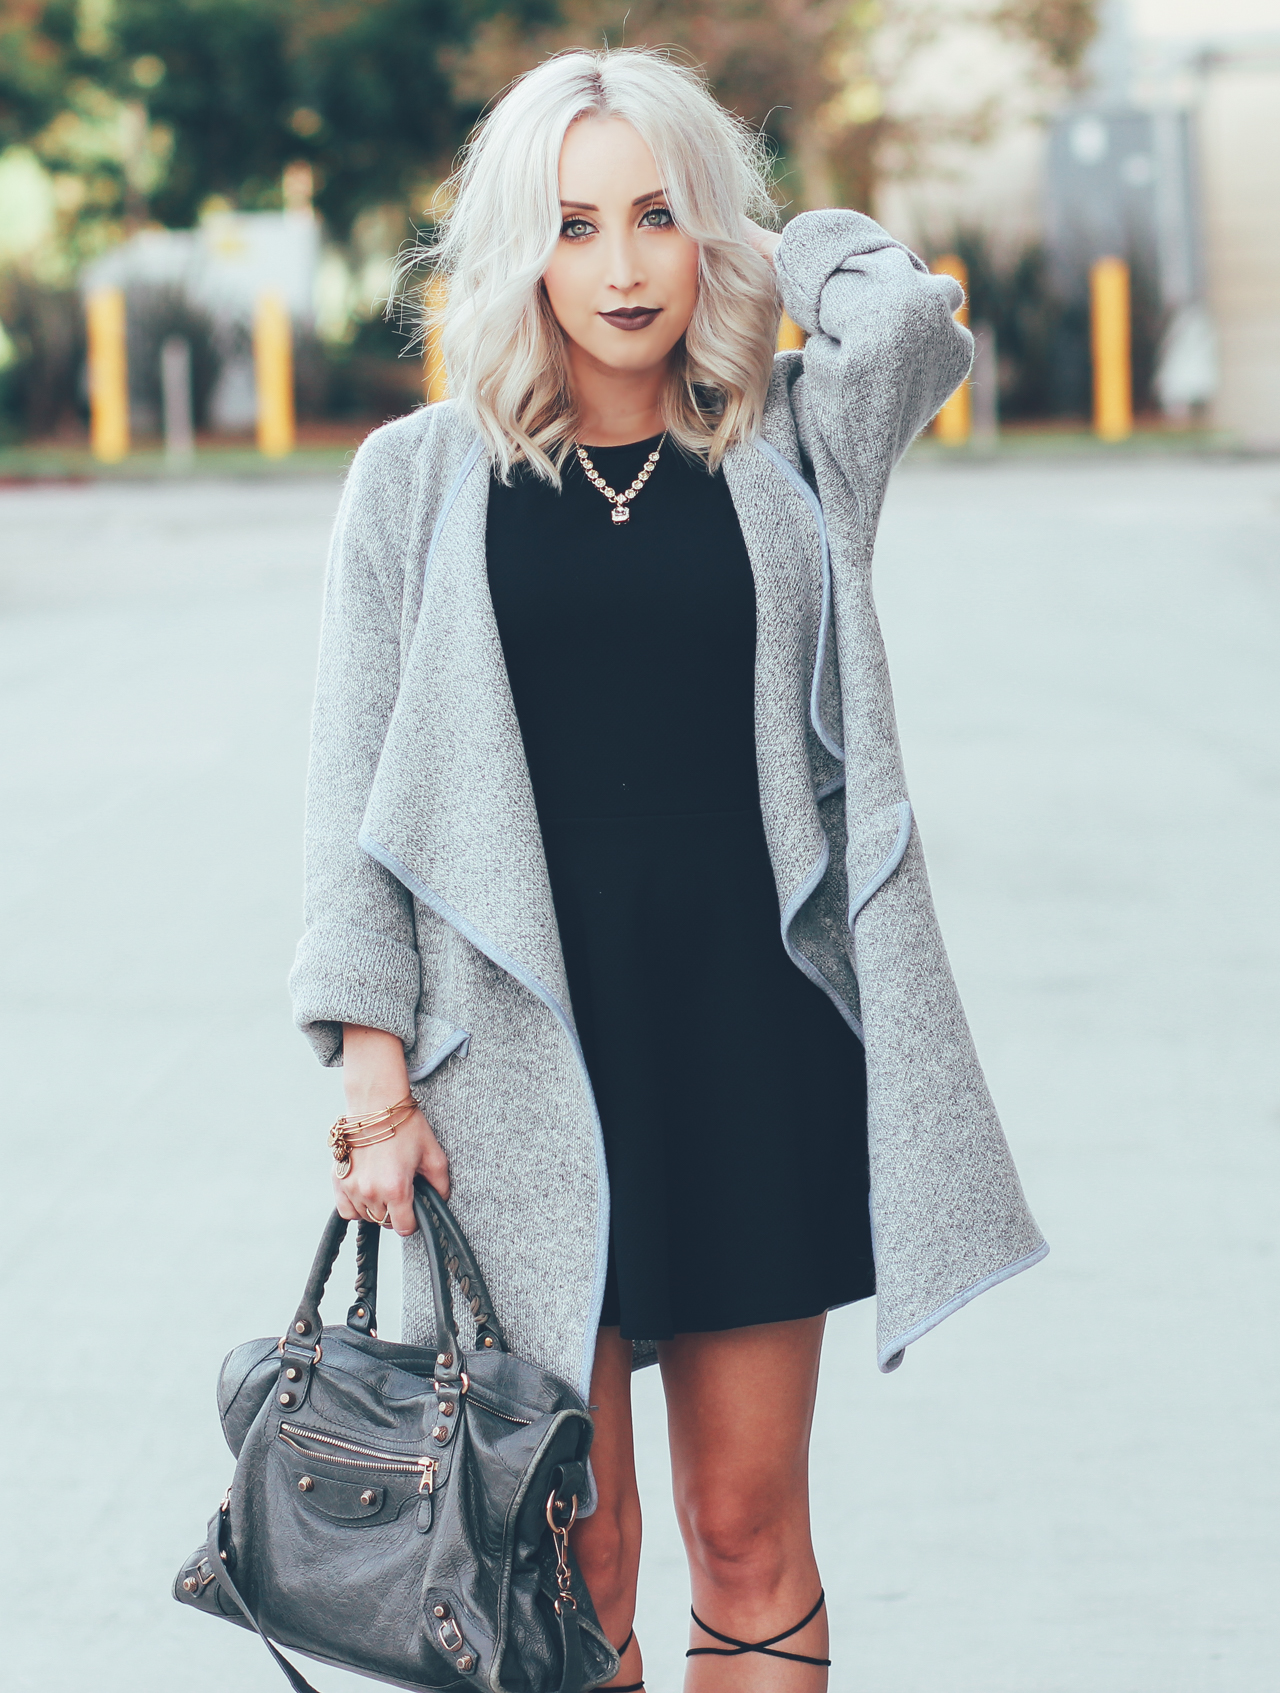 Gray Coat | Black Dress | Lace Up Heels | StyledByBlondie.com